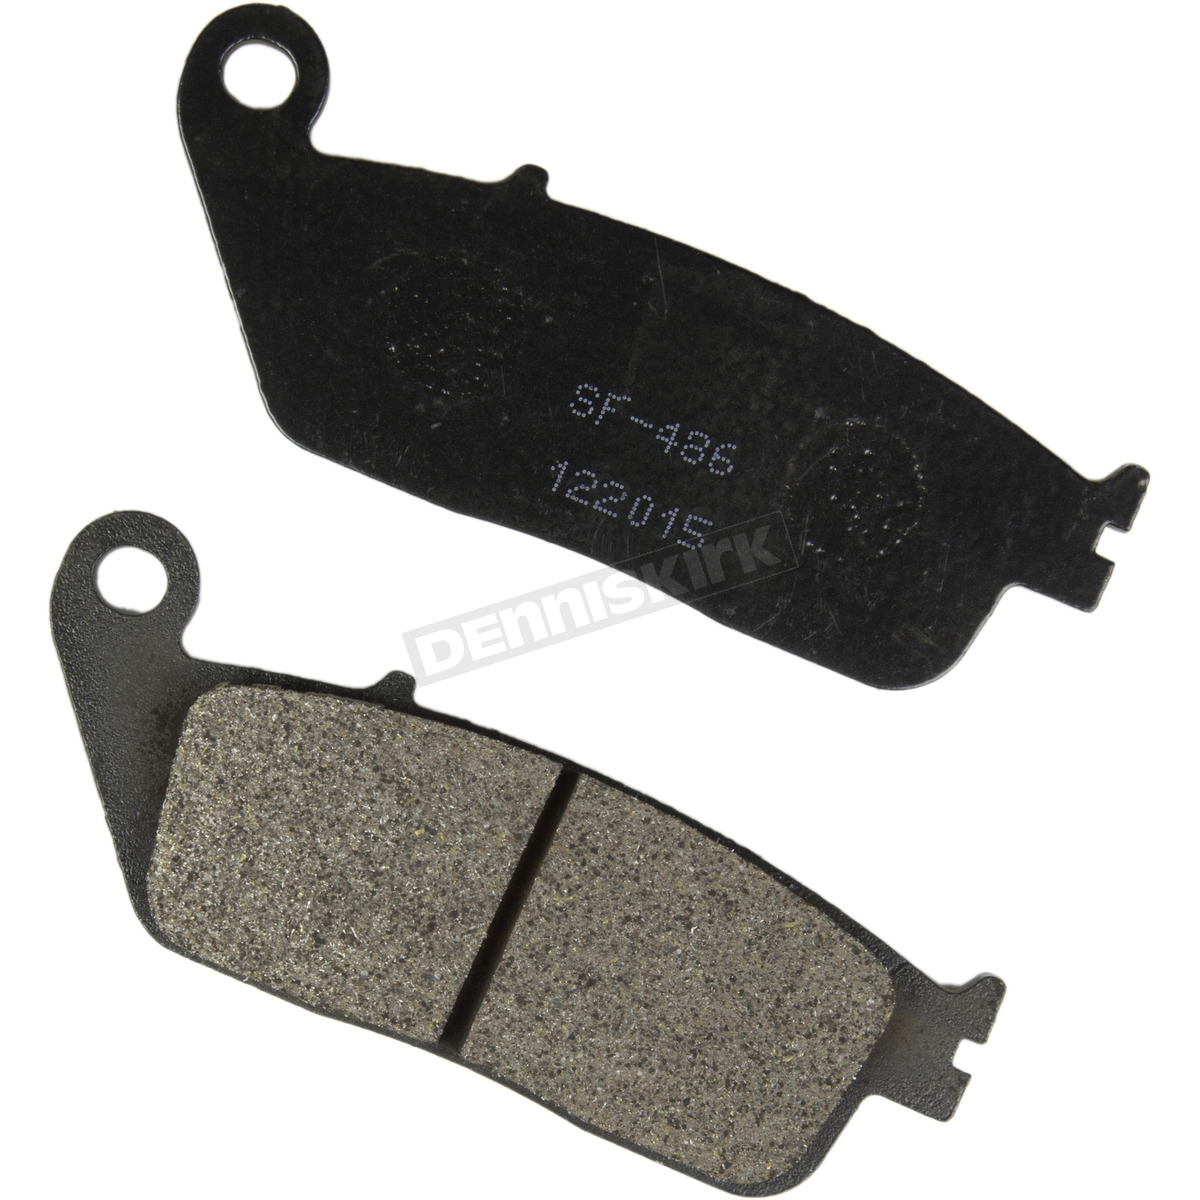 Front Brake Pads For Honda VT1100C2 Shadow 1100 ACE 1995 1996 1997 1998 99 00 01